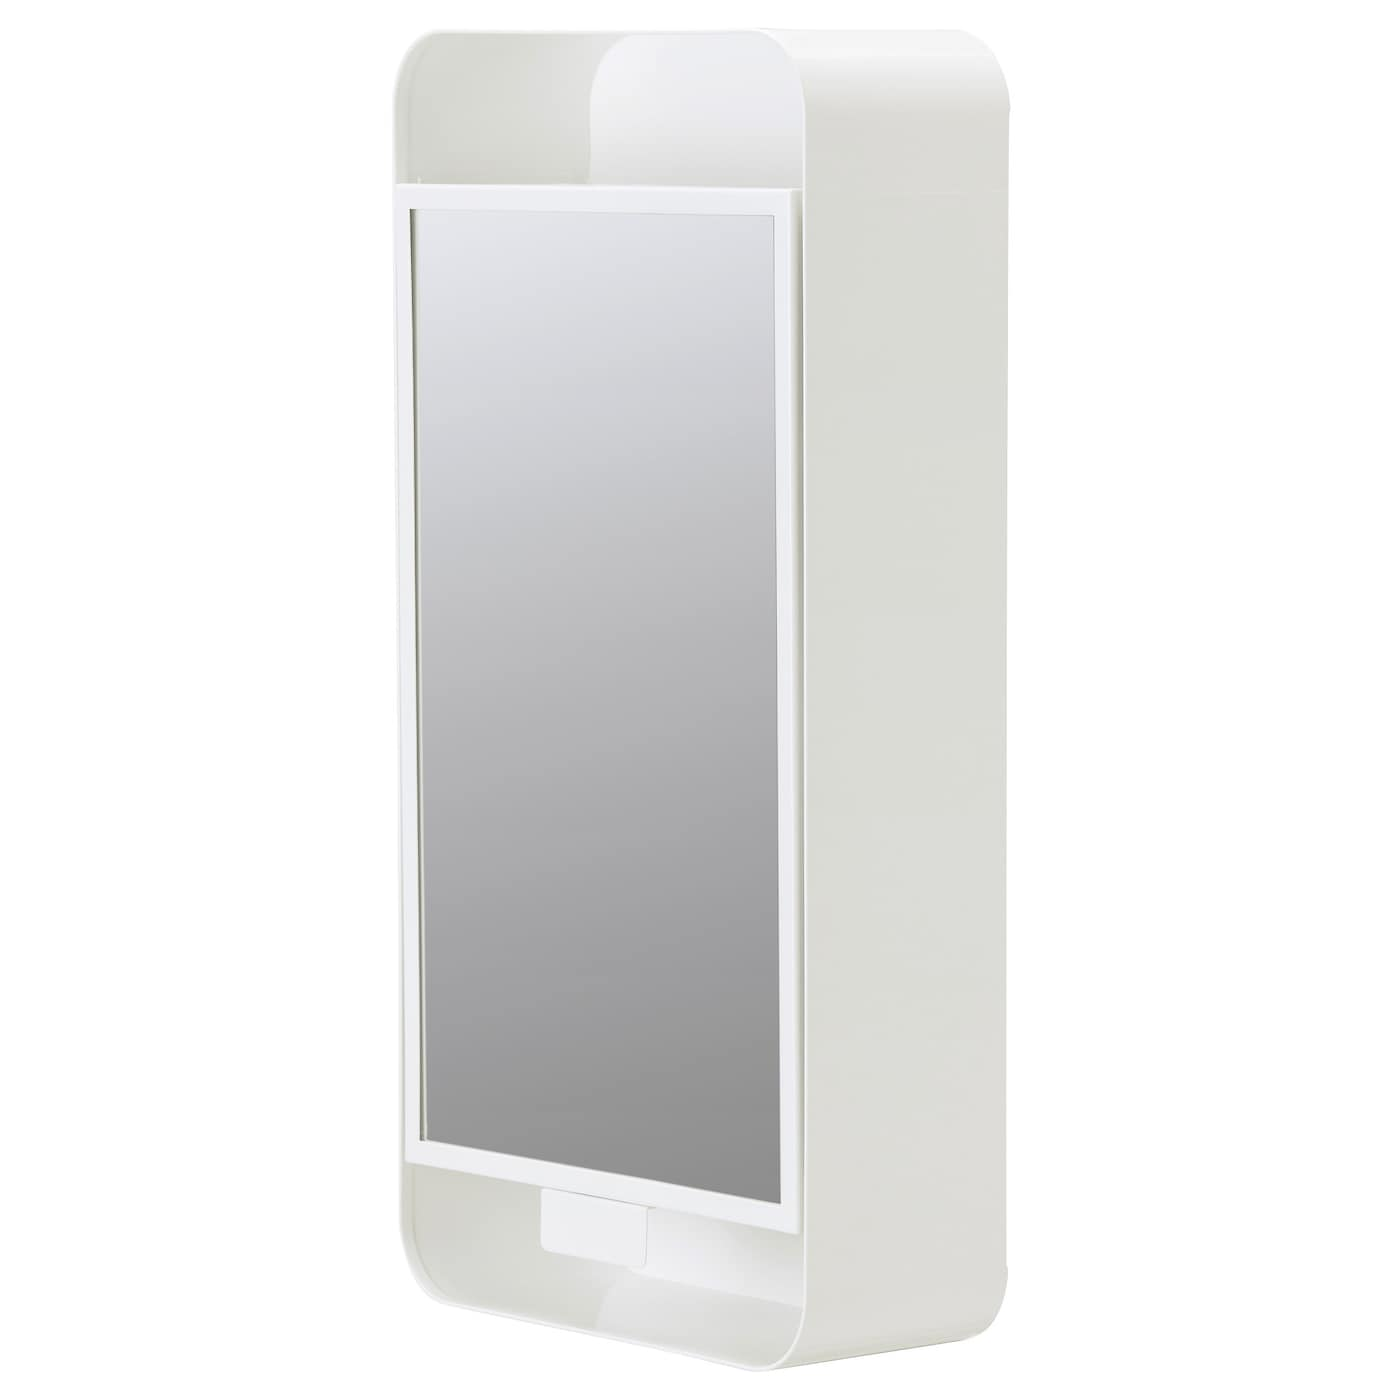 IKEA GUNNERN mirror cabinet with 1 door Shelves with raised edging for safe storage.